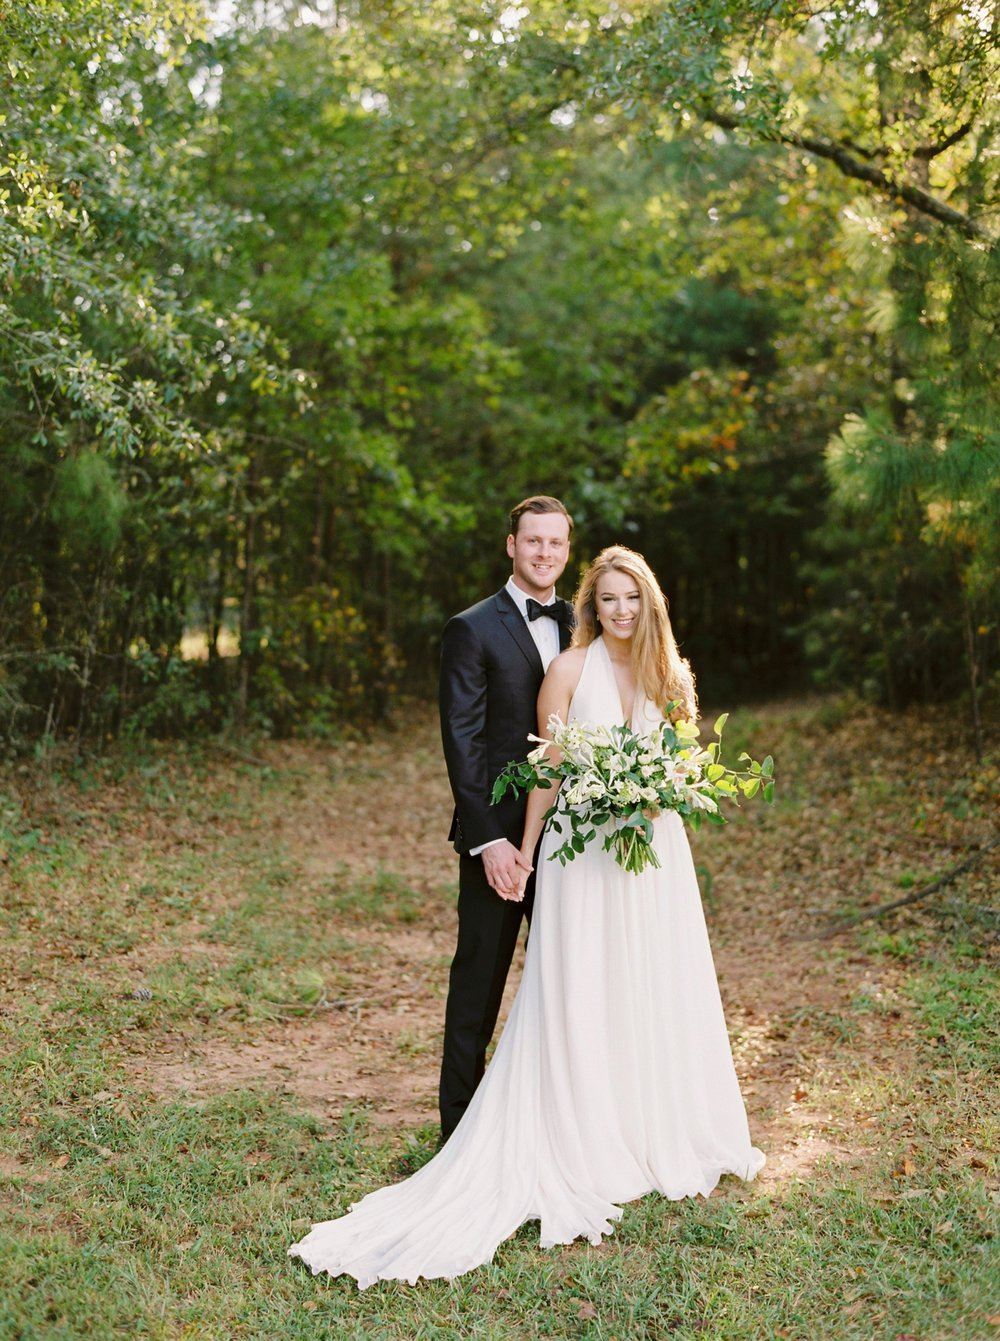 Calgary wedding photographers | georgia wedding photographers | fine art film | Justine Milton Photography | georgia wedding | wedding dress | bride and groom portraits | bouquet